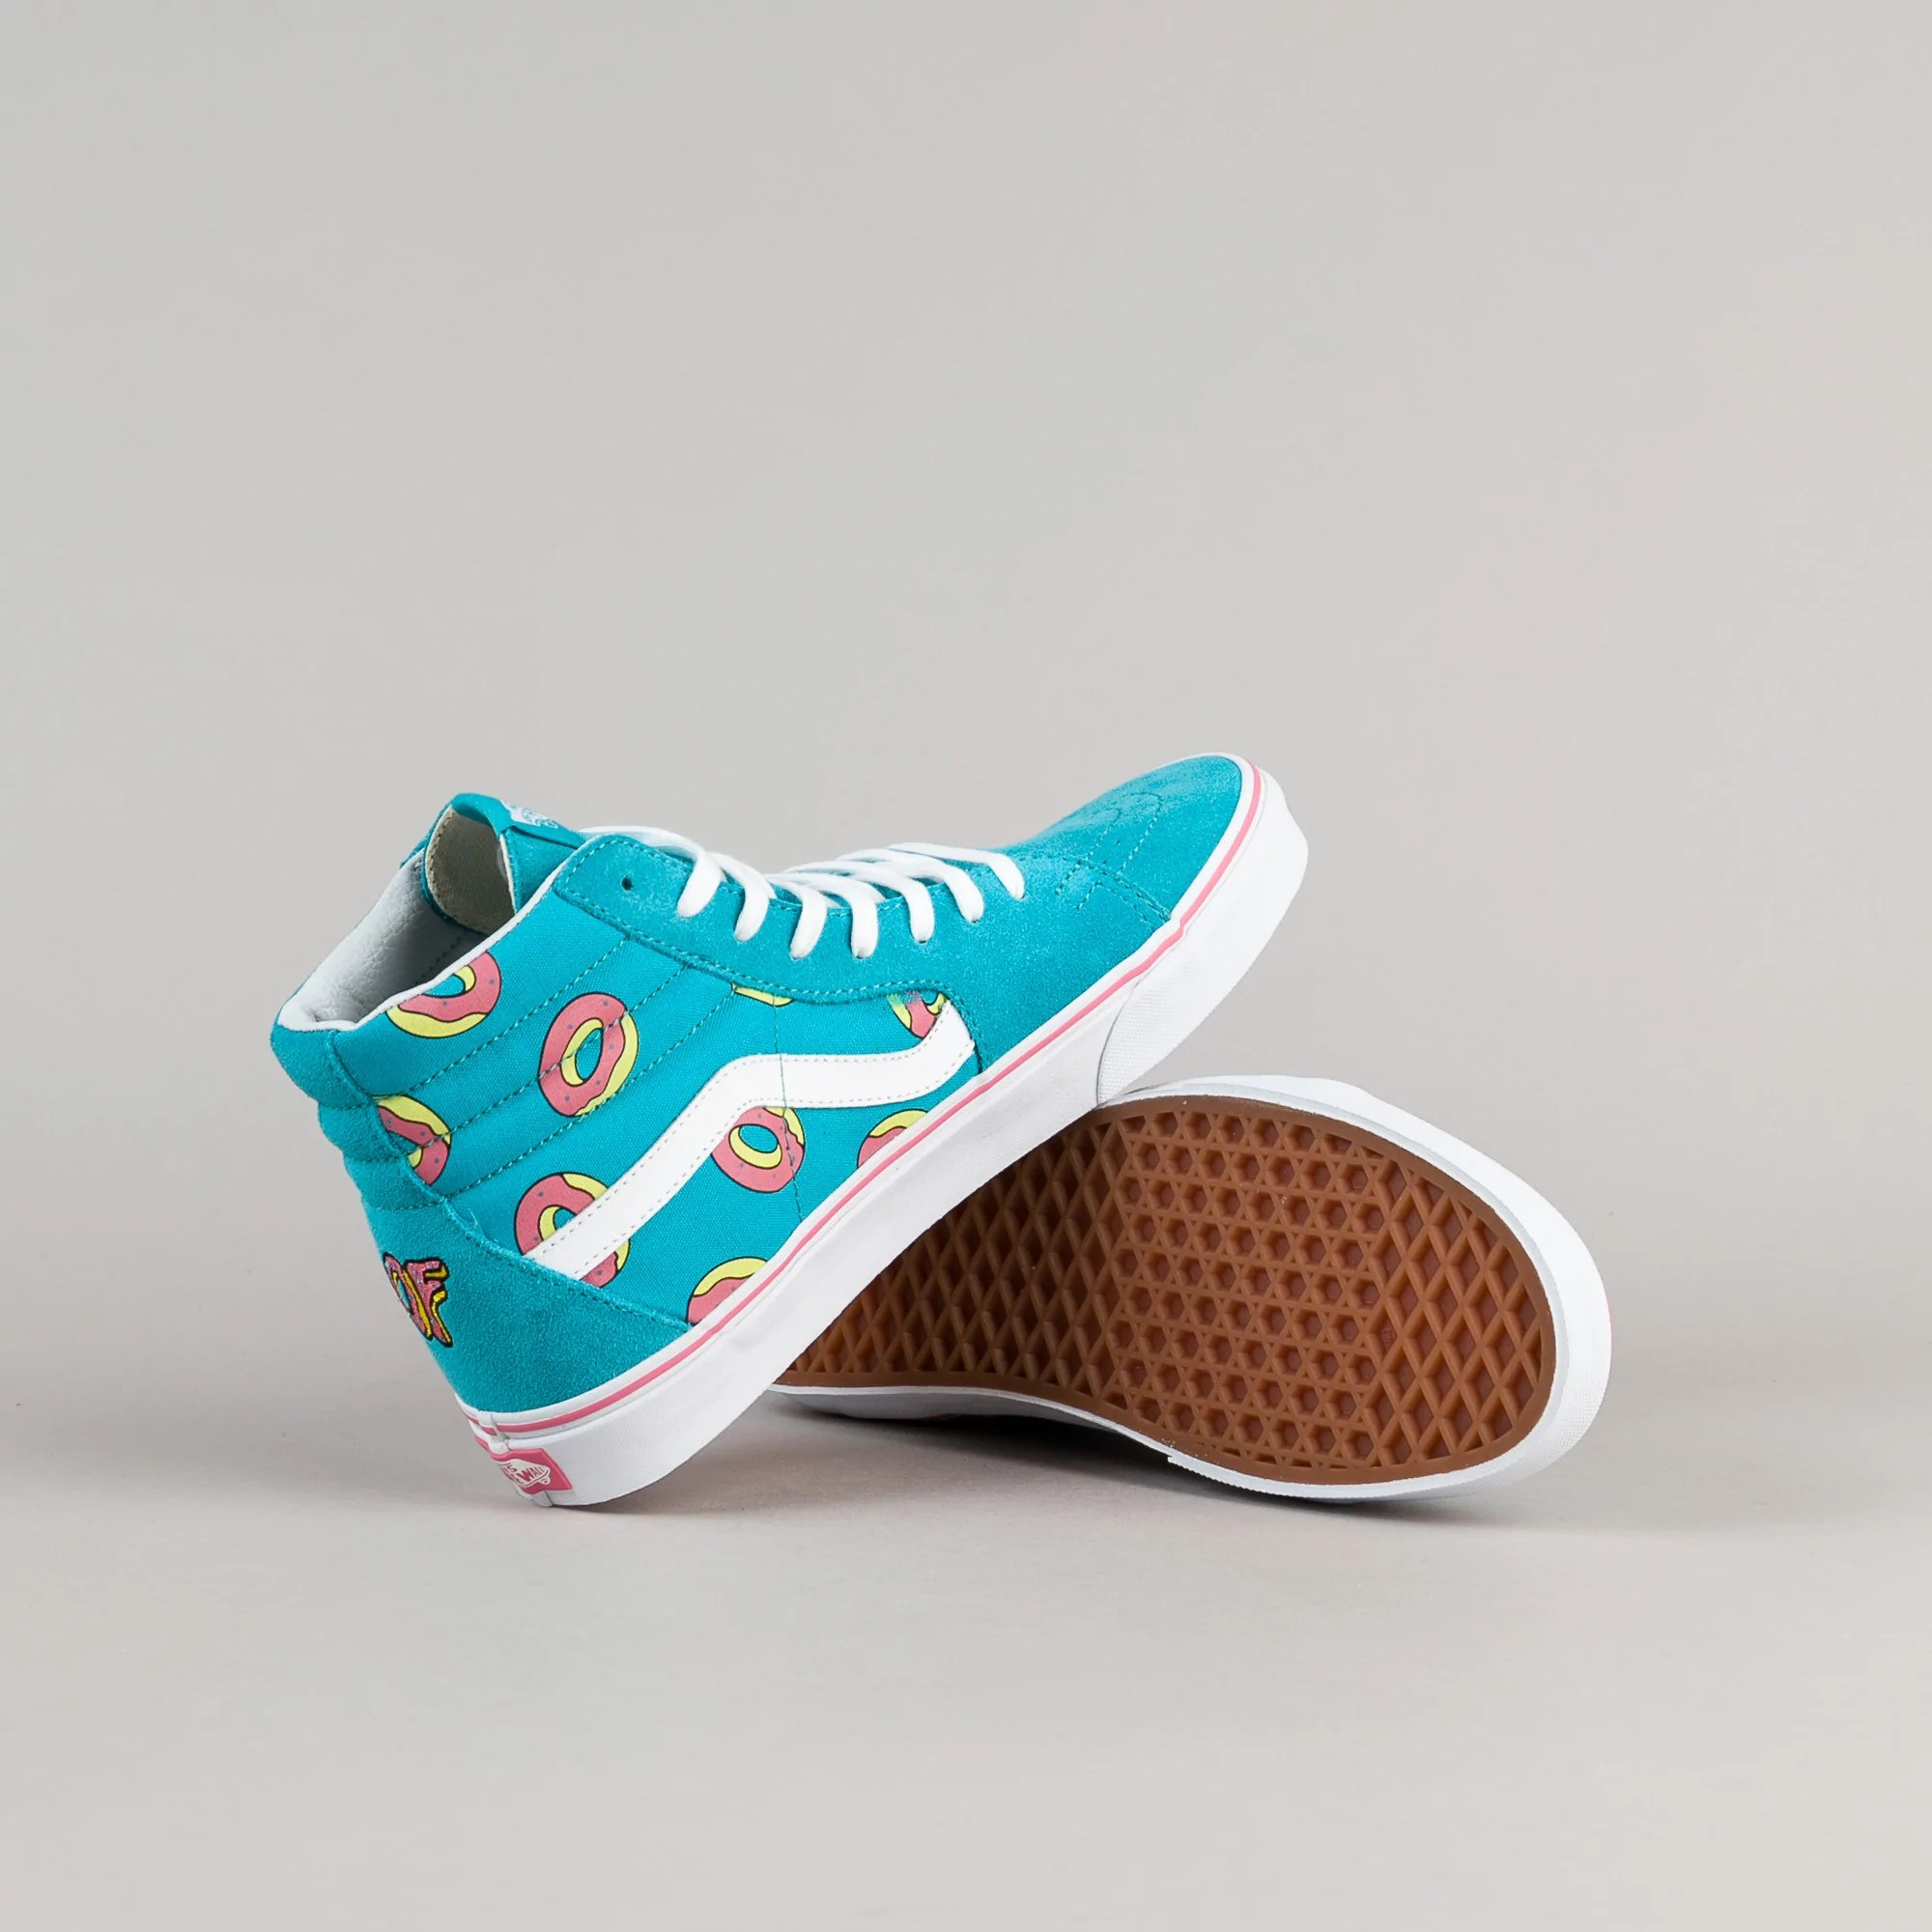 7d72cde2500b 20+ Donut Vans High Pictures and Ideas on Meta Networks. donut vans. Vans x  Odd Future ...